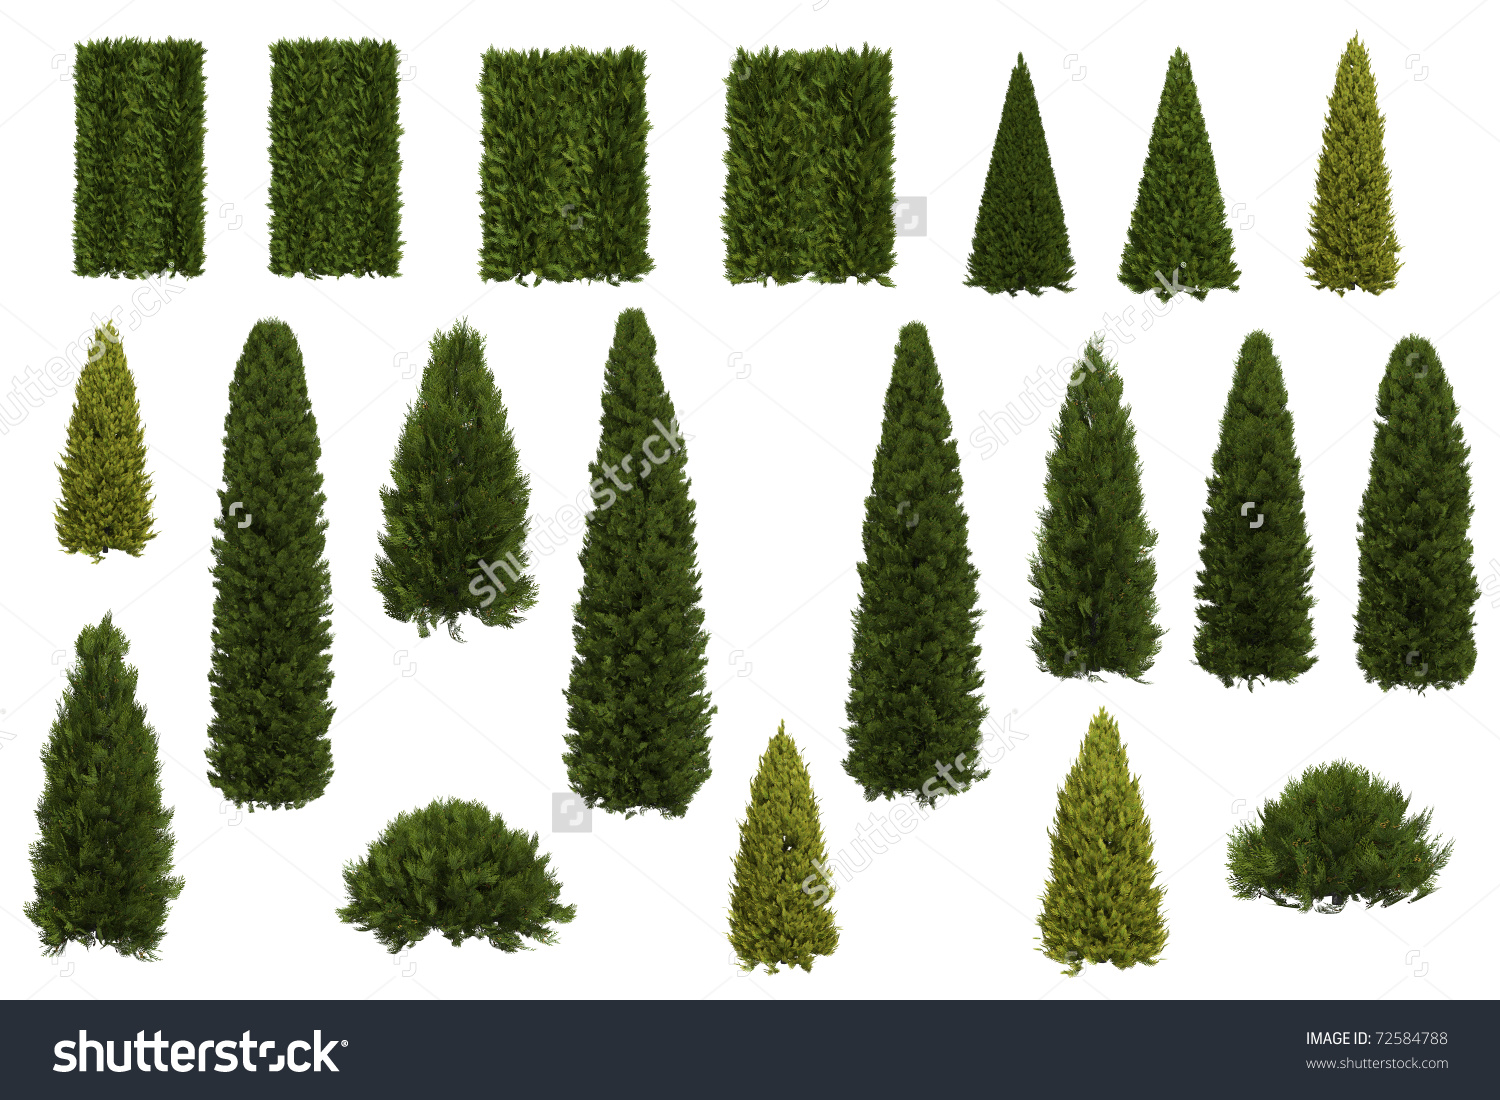 Set Juniper Thuja Trees Isolated On Stock Illustration 72584788.